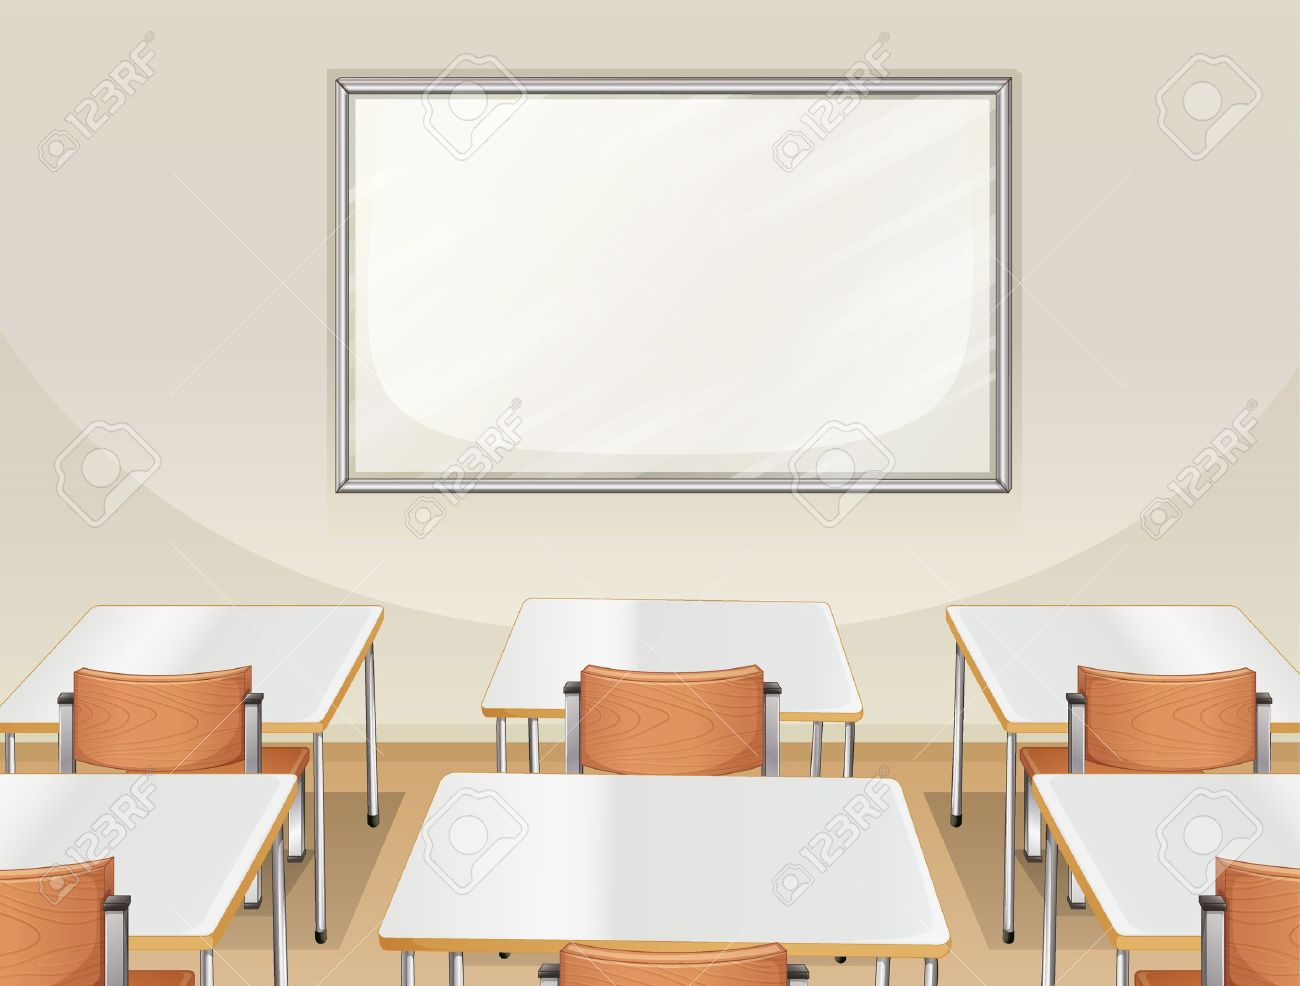 Cartoon classroom door - Classroom Door Cartoon Illustration Of An Empty Classroom Stock Vector Attached Chair Illustration Of An